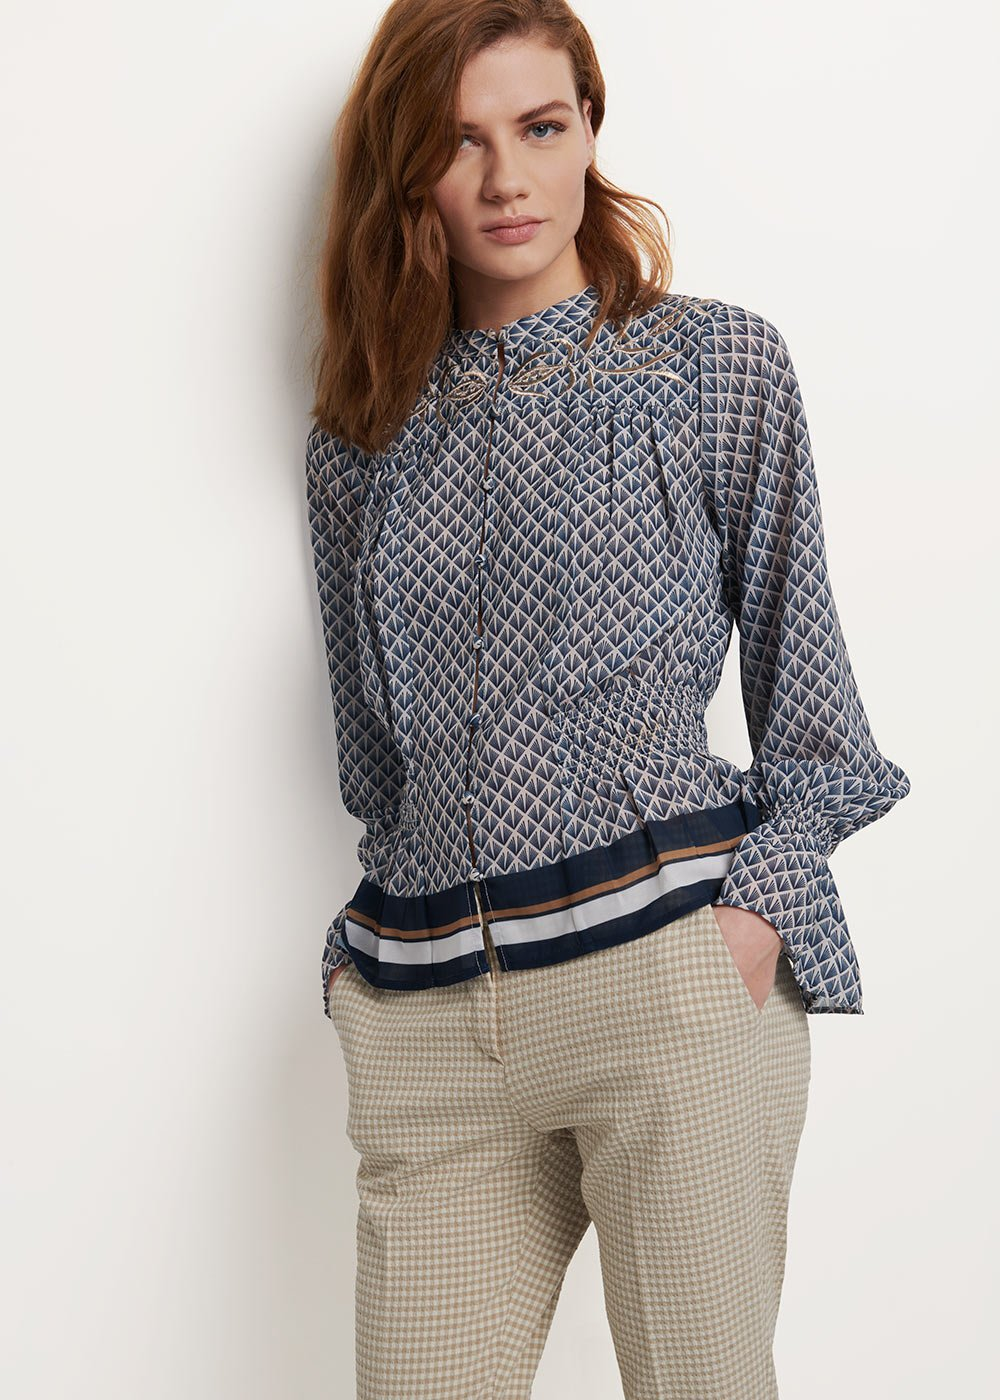 Caterin blouse with white and blue pattern - White\ Avion\ Fantasia - Woman